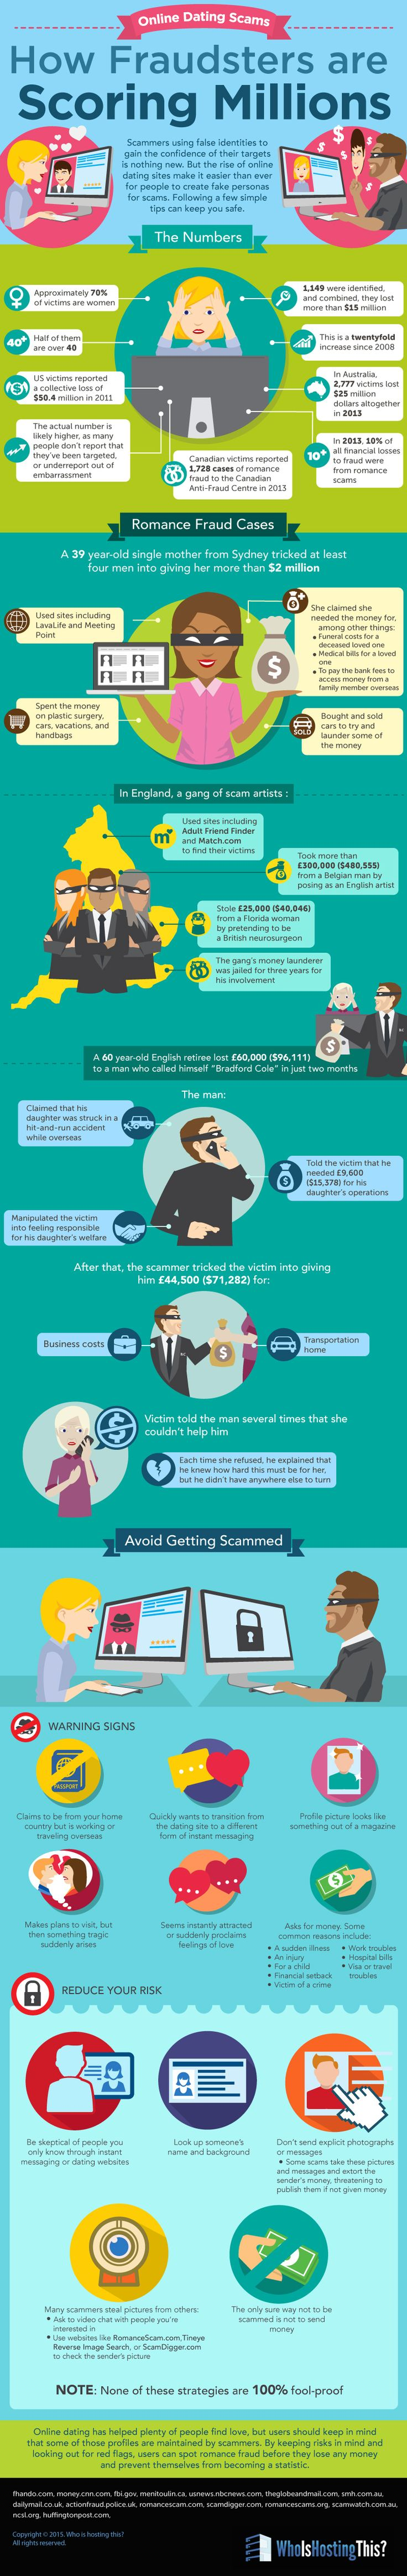 Online Dating Scams: How Scammers are Scoring Millions #infographic #Internet #Dating #DatingSites #Scams